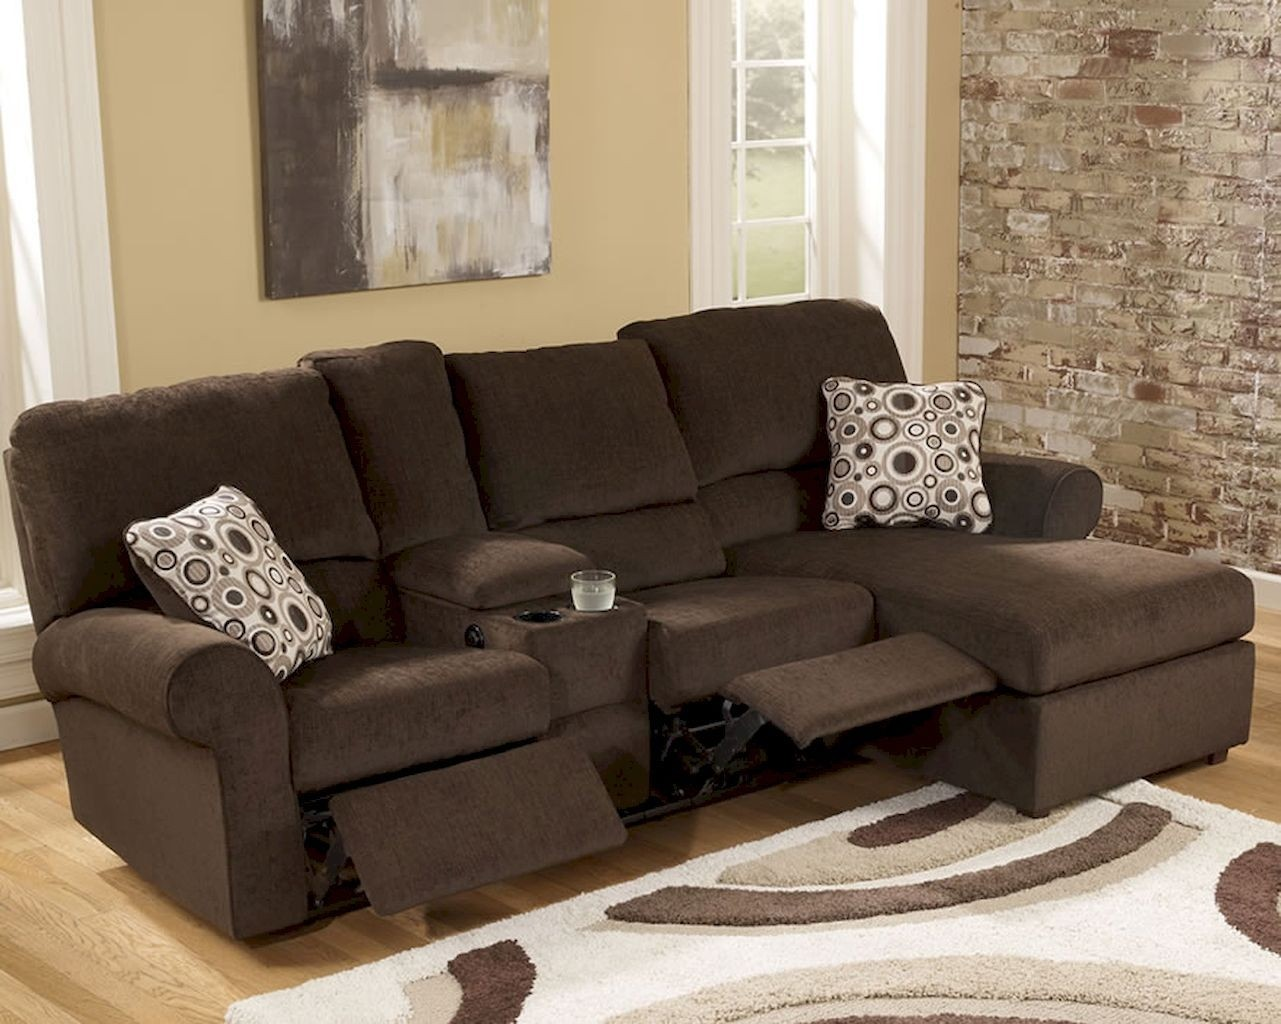 small sectional sofa with recliner ideas on foter rh foter com modern l shaped recliner sofa l shaped recliner sofa singapore